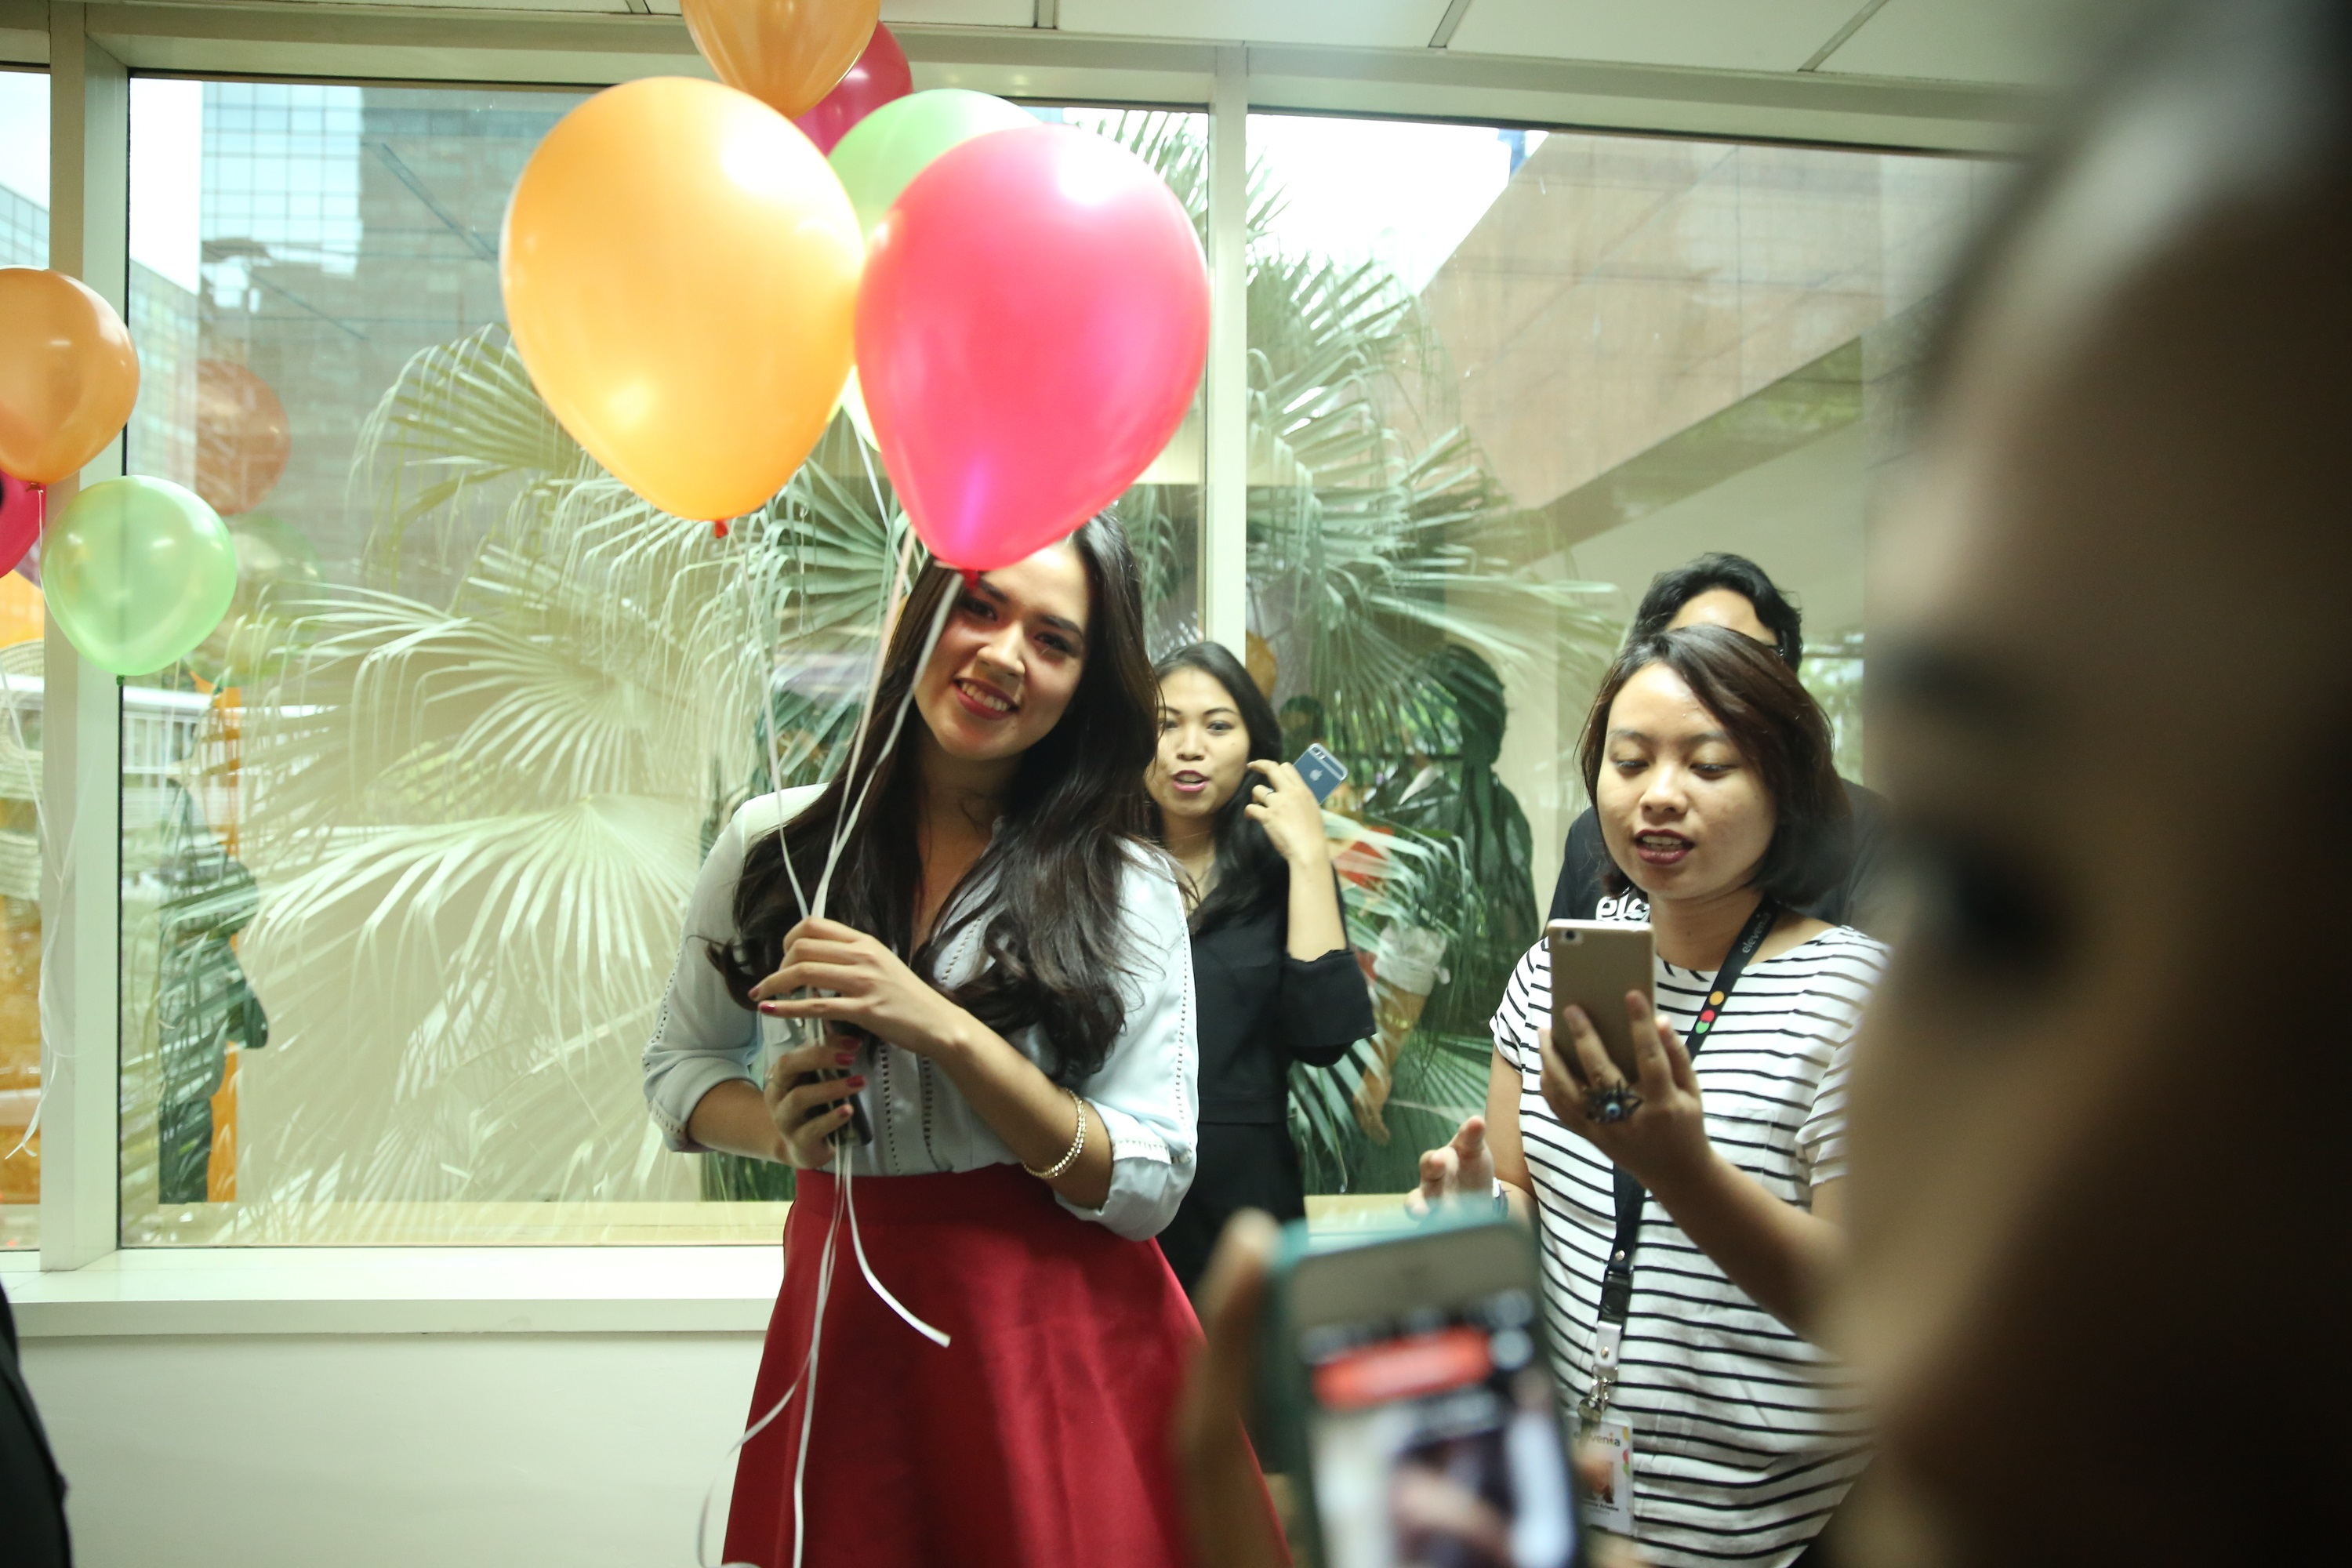 Raisa receiving her elevenian baloons as a welcome.